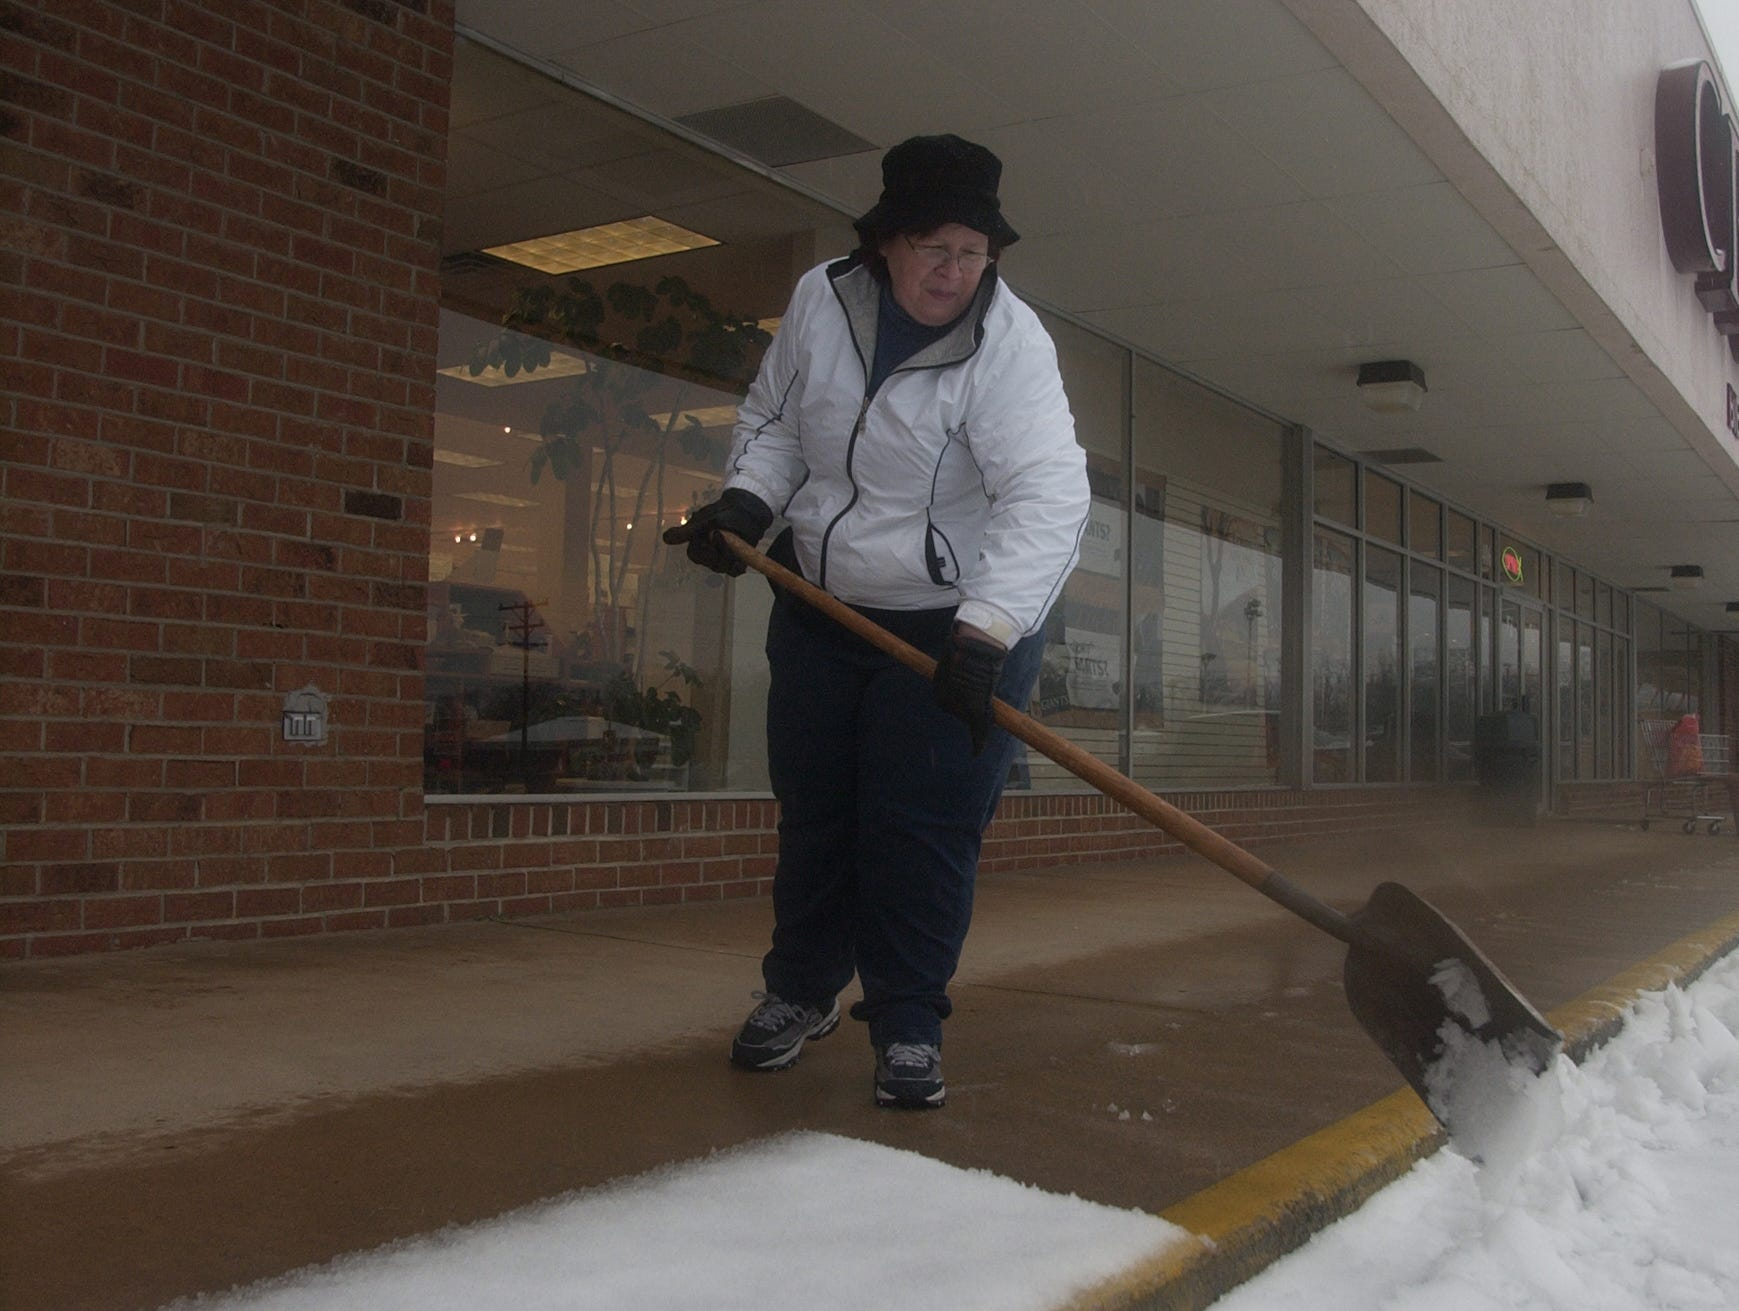 Terry Smith, a book-keeper at Cross Way, shovels in front of the East North Street store on Thursday, February 1, 2007.